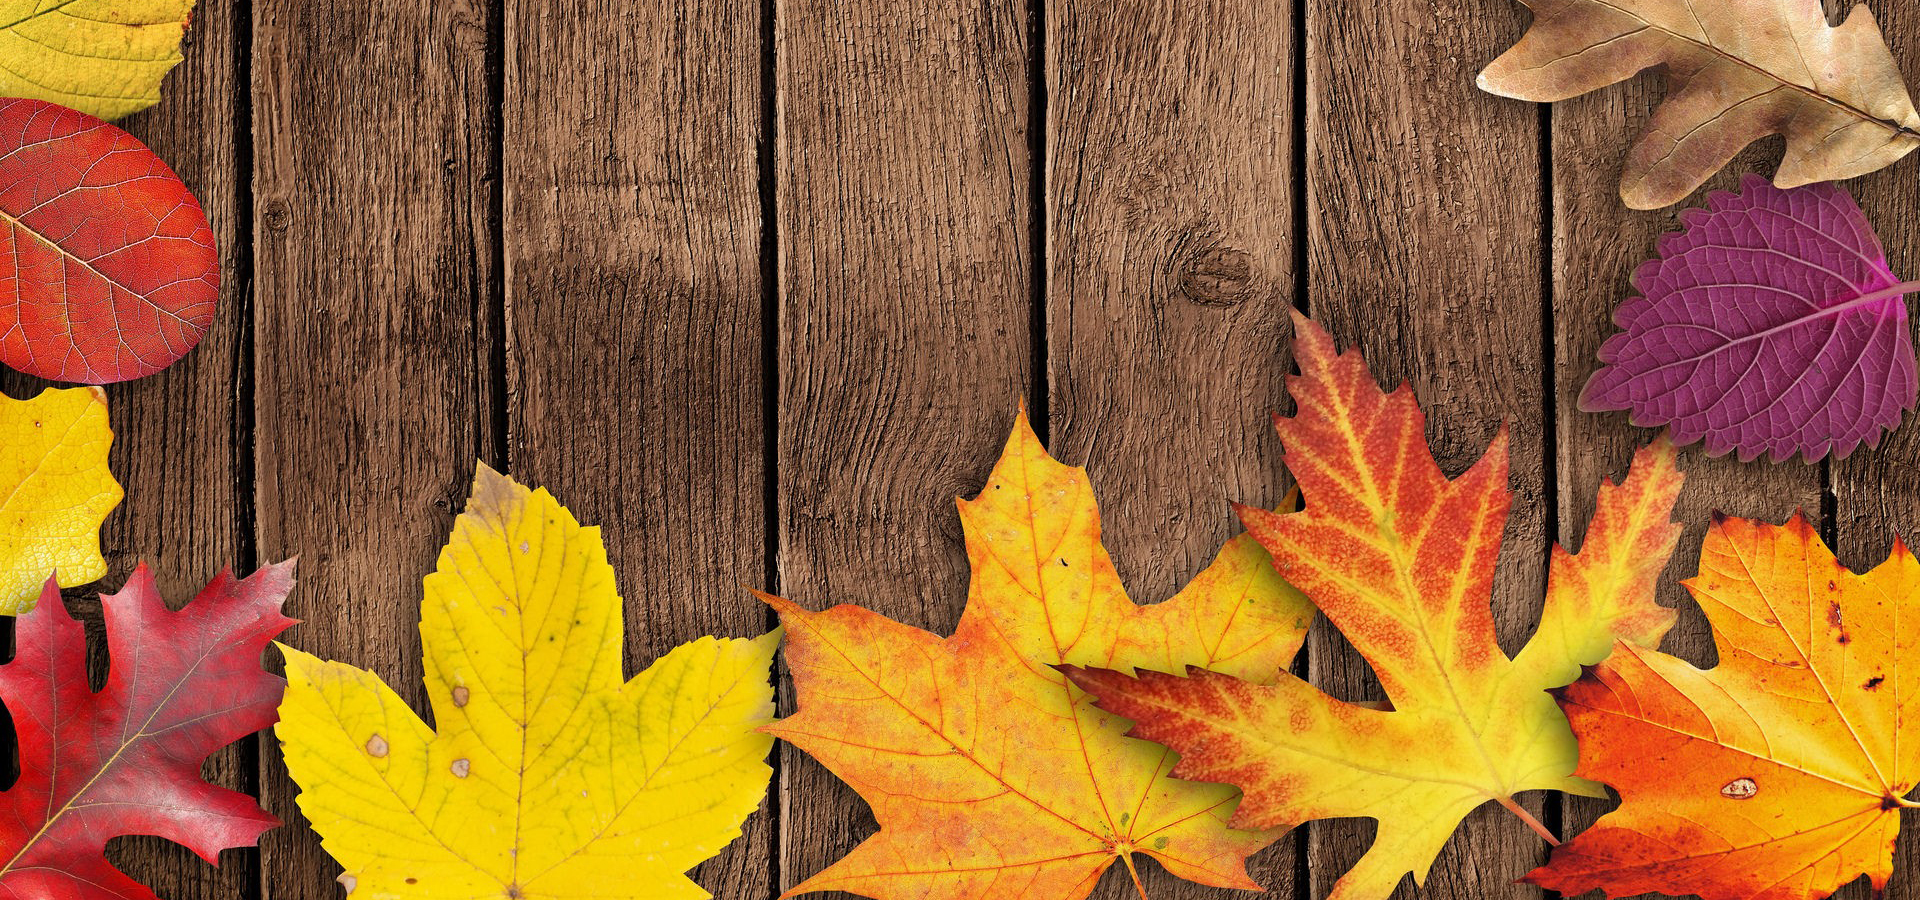 maple autumn fall leaves background  yellow  season  orange background image for free download